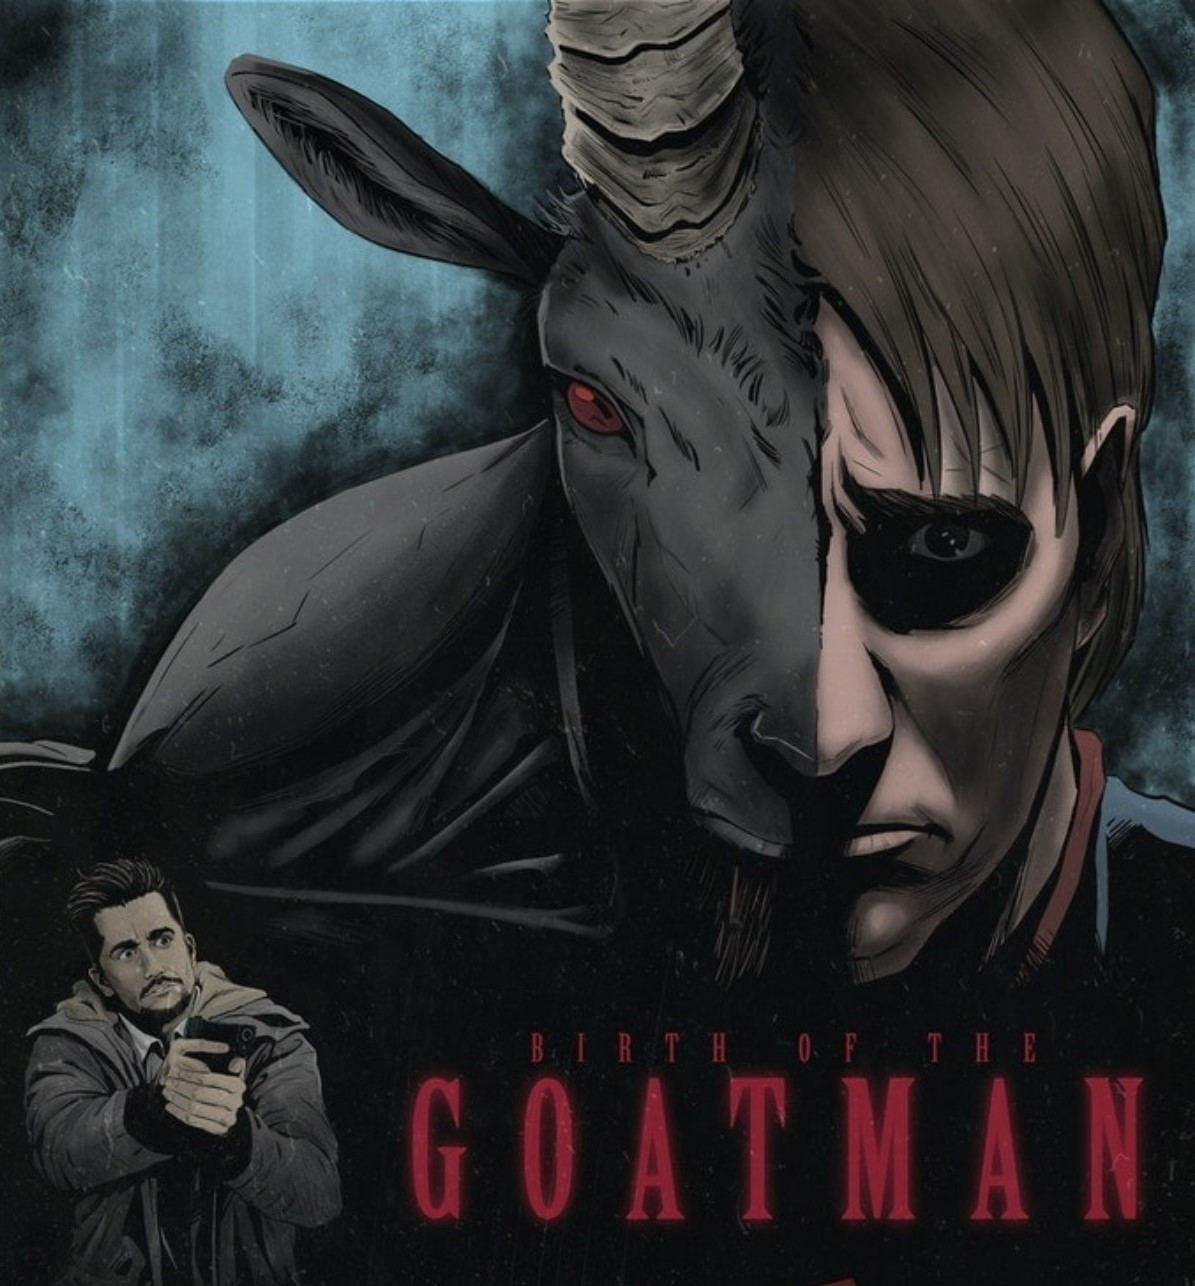 Birth of the Goatman Cover